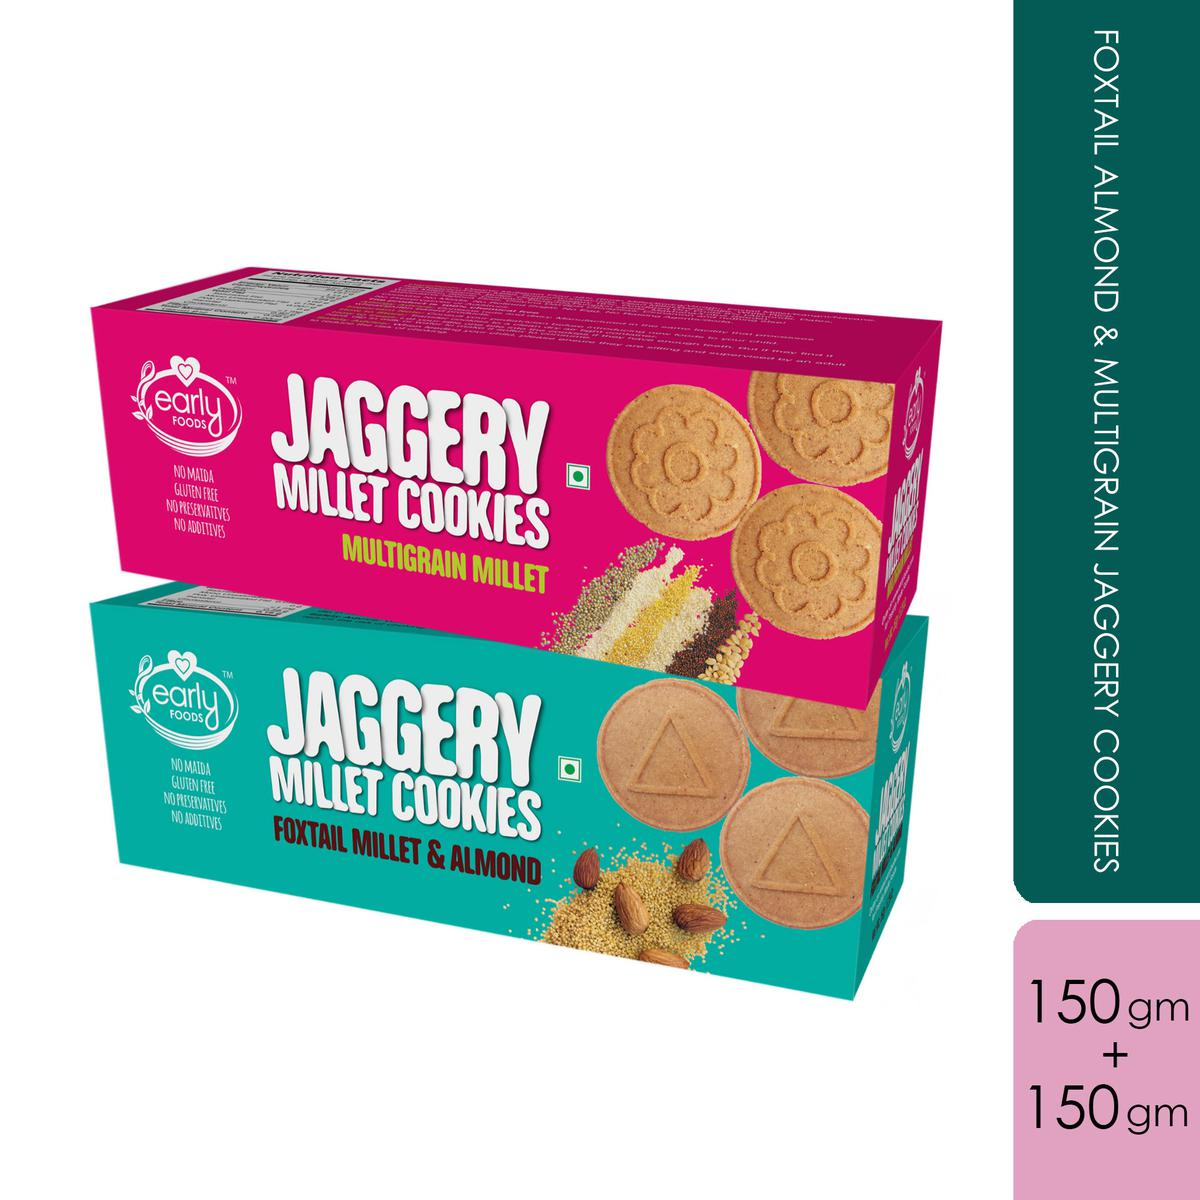 Early Foods - Assorted Pack of 2 - Foxtail Almond & Multigrain Jaggery Cookies X 2, 150g each